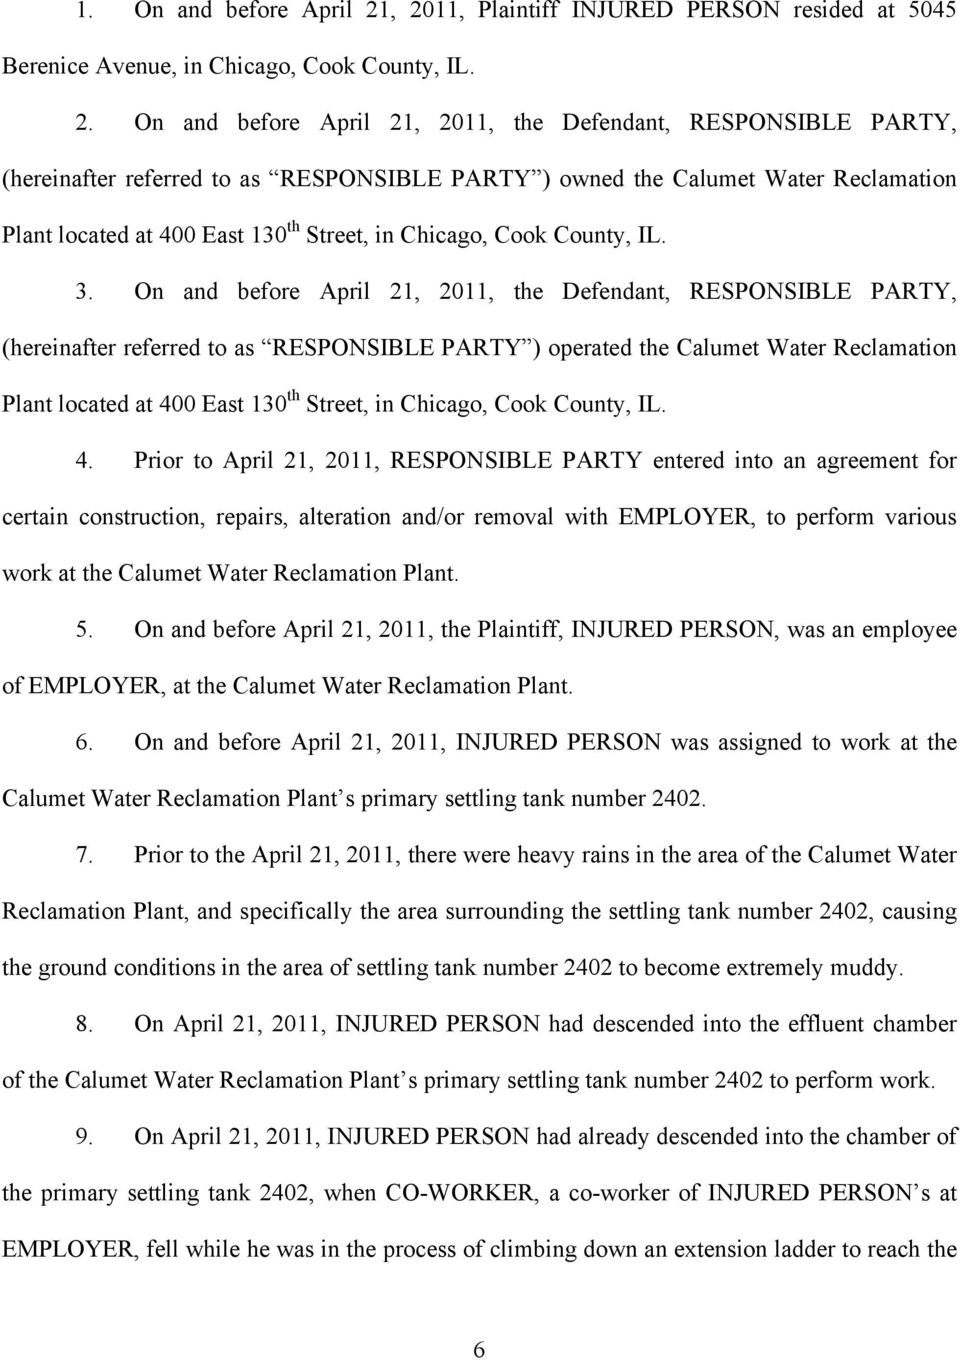 RESPONSIBLE PARTY owned the Calumet Water Reclamation Plant located at 400 East 130 th Street, in Chicago, Cook County, IL. 3.